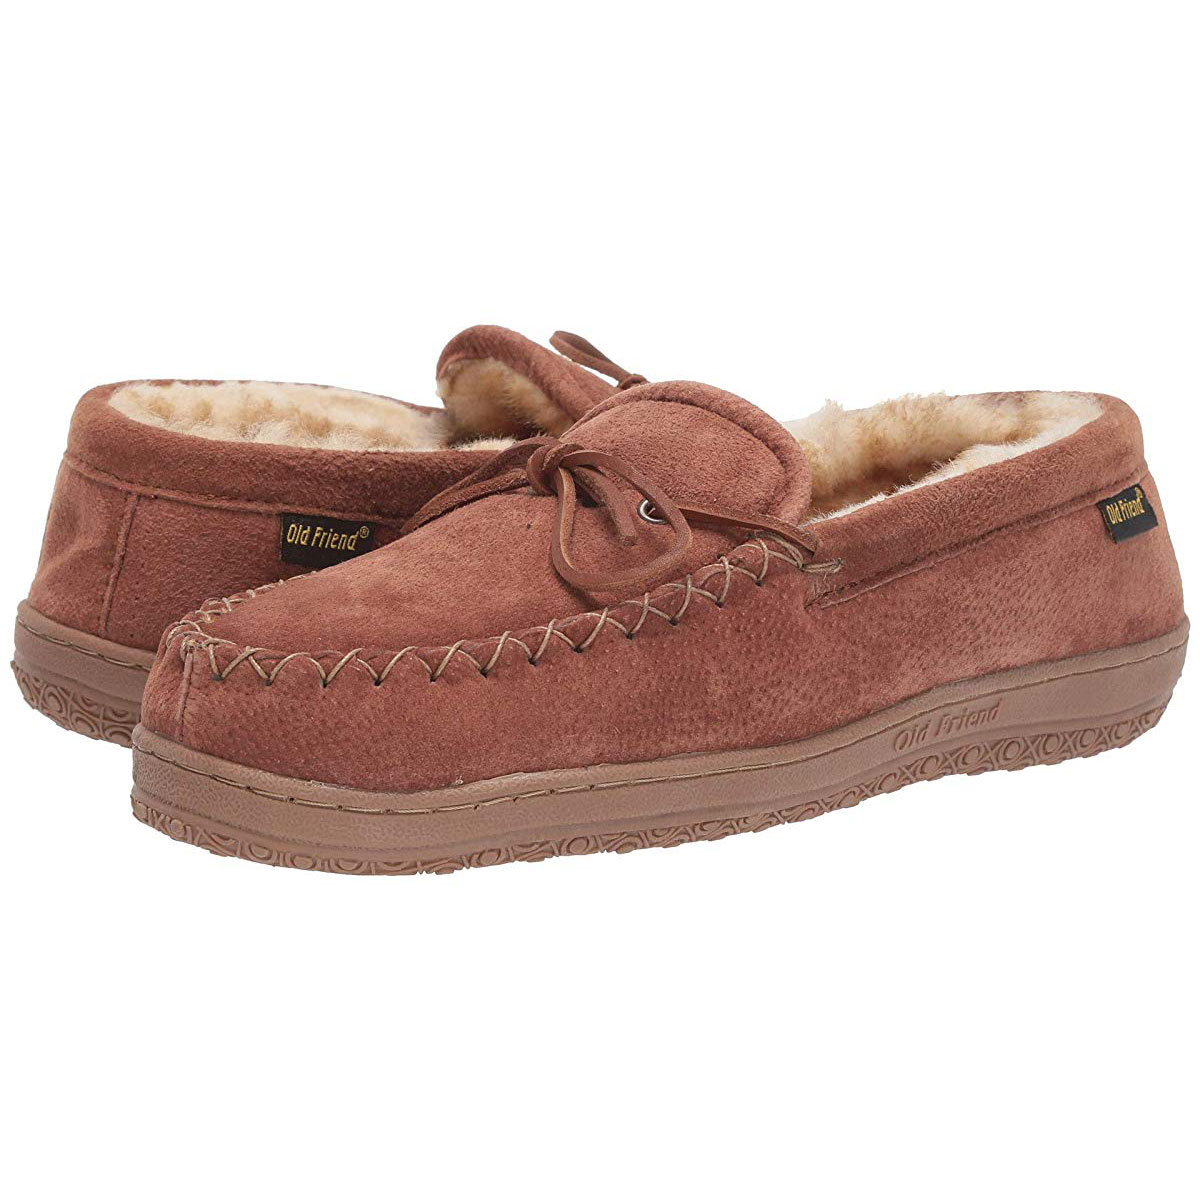 Gifts for Brother: Old Friend Loafer Moccasin Slippers on Zappos